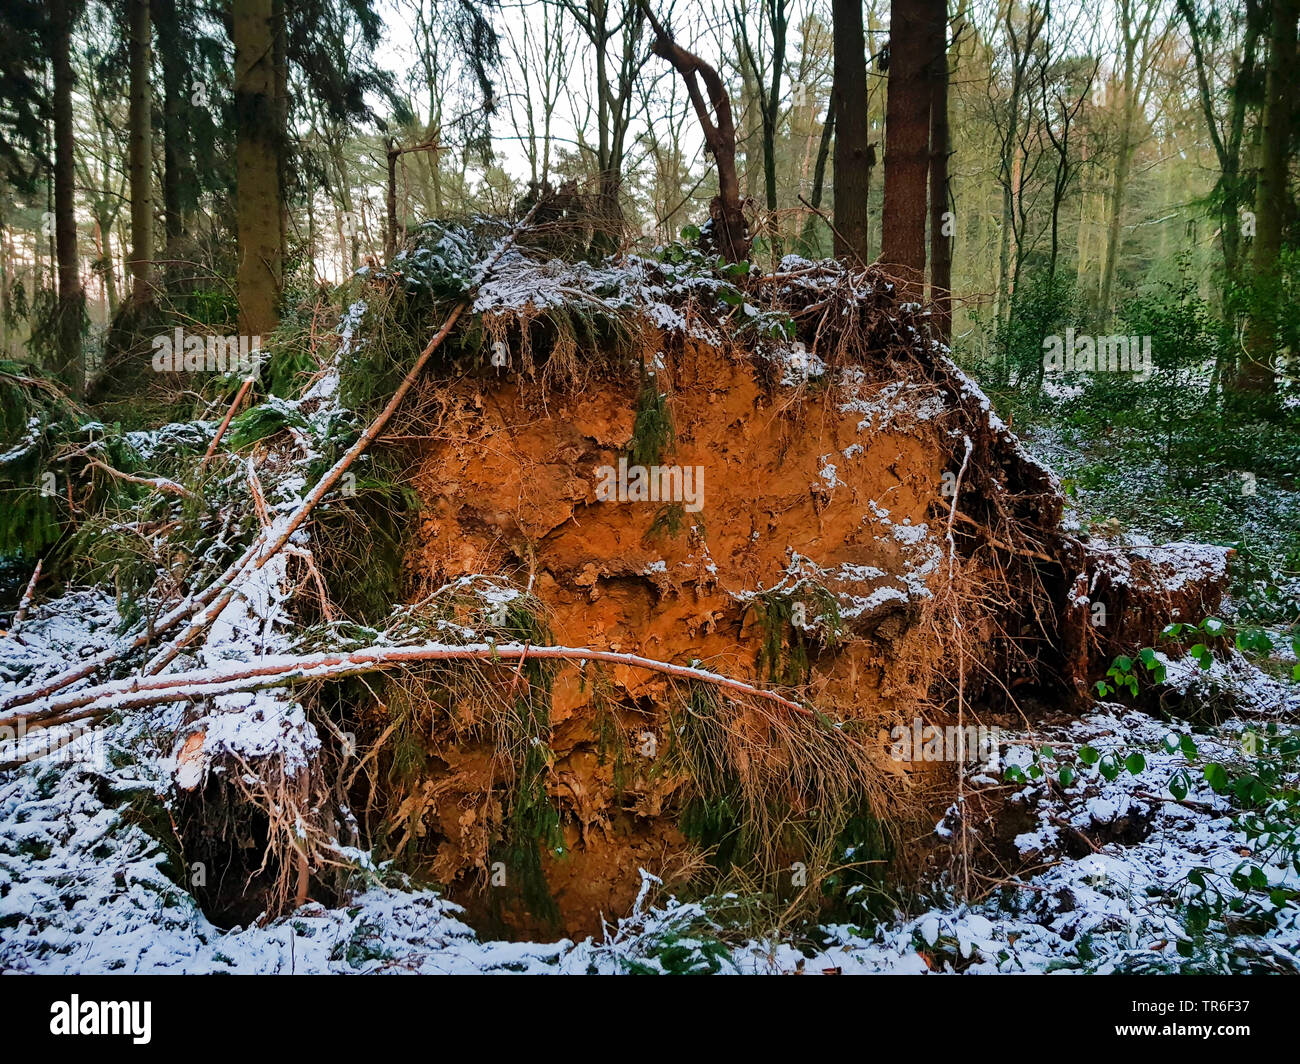 Norway spruce (Picea abies), fallen trunk after a storm in winter, Germany, North Rhine-Westphalia - Stock Image